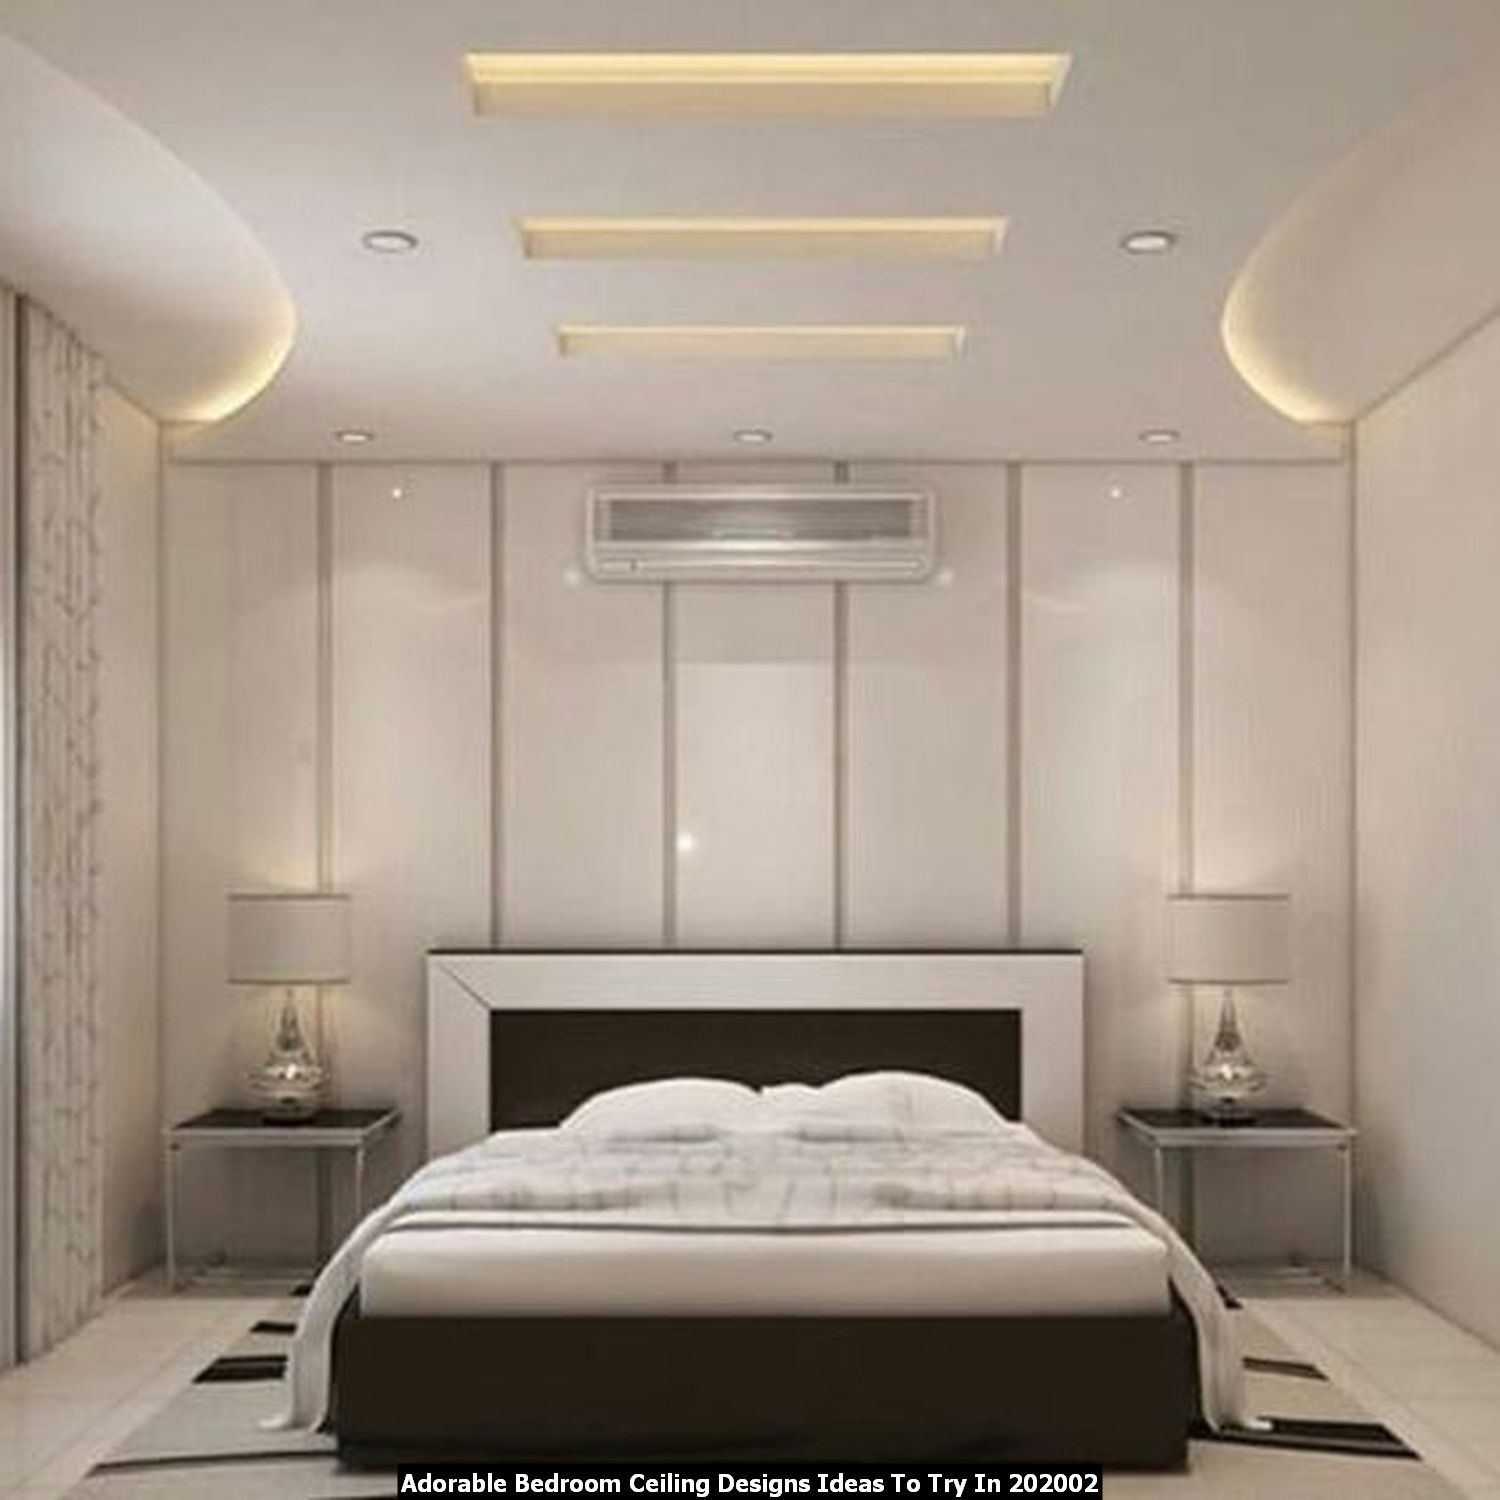 Cool 20+ Adorable Bedroom Ceiling Designs Ideas To Try In ...